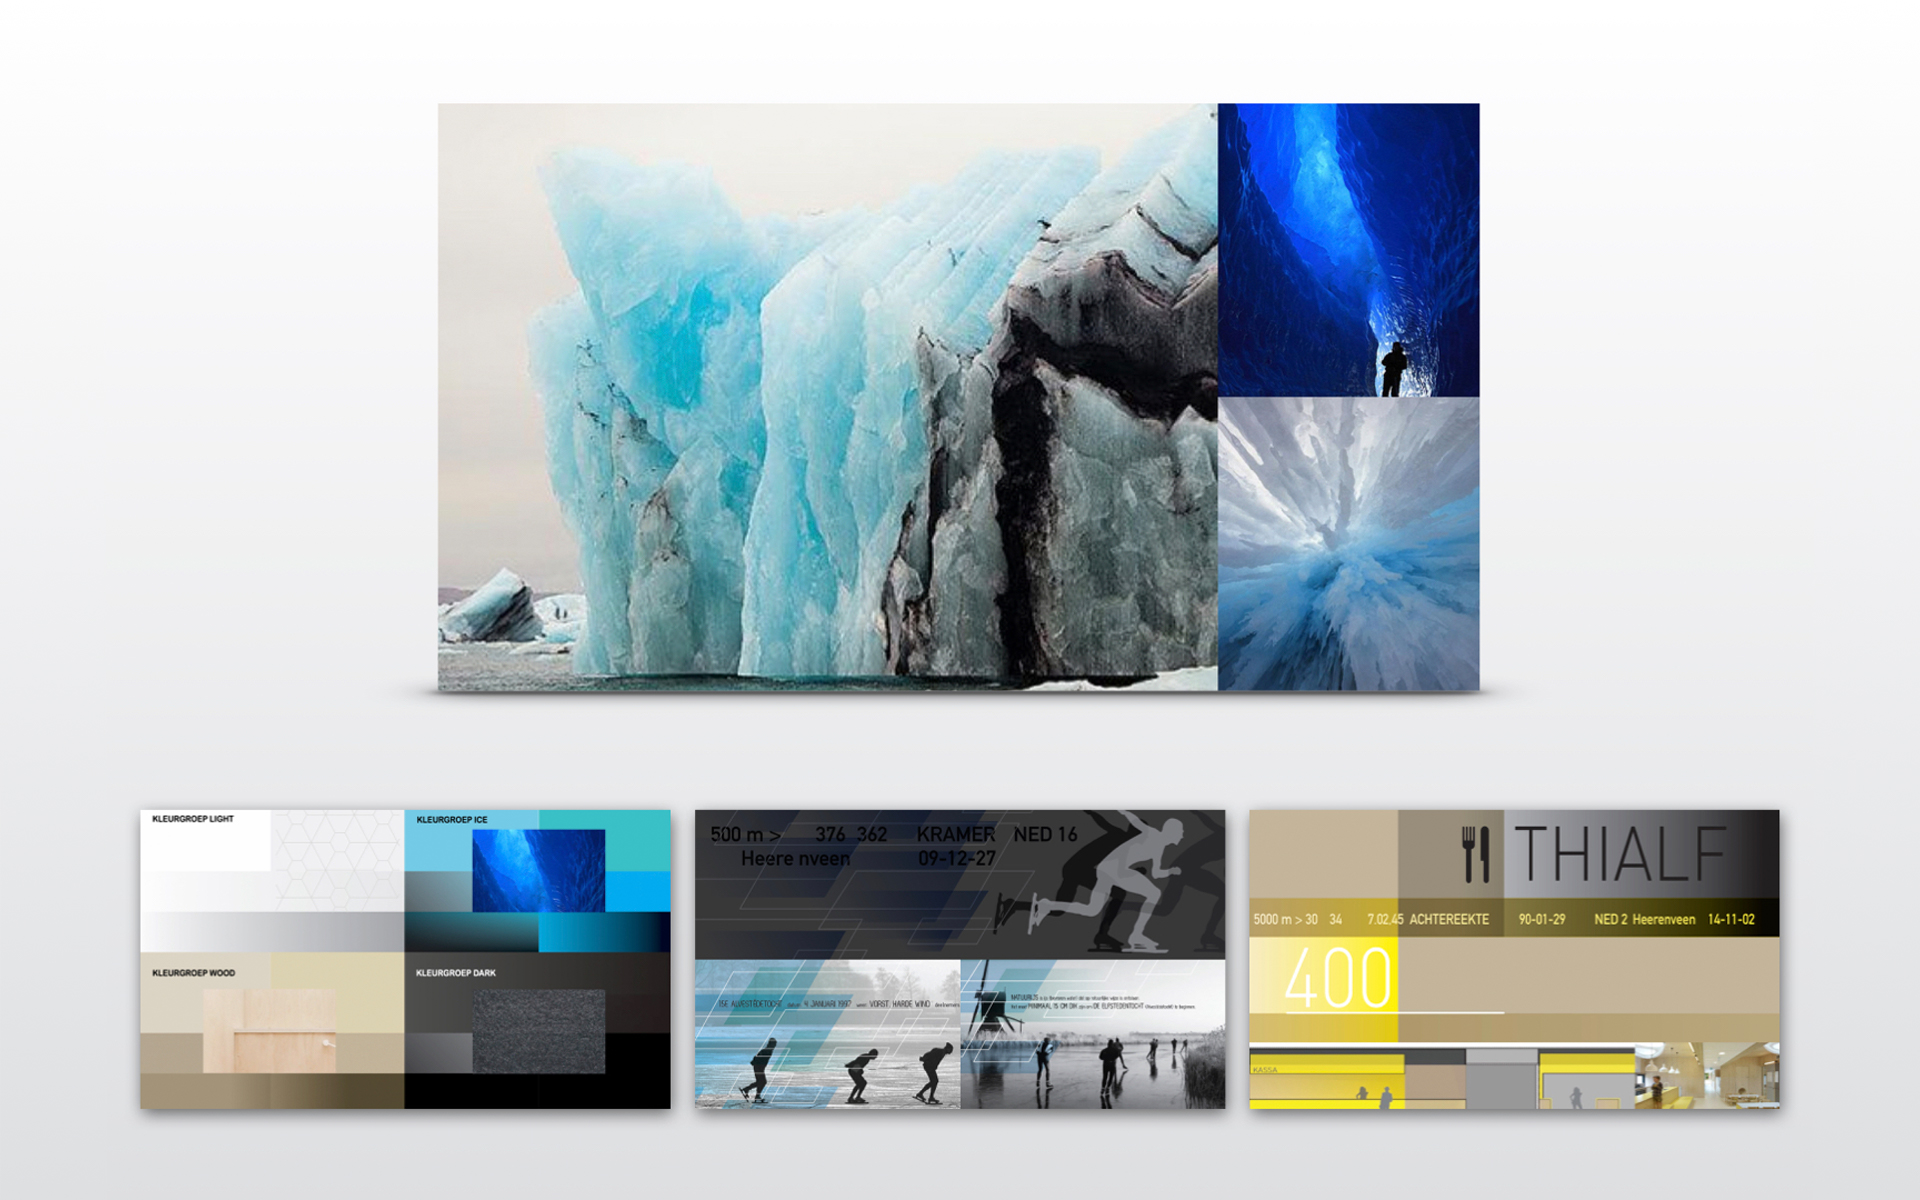 Thialf Ring DAY Creative Experience concept spatial and interior design